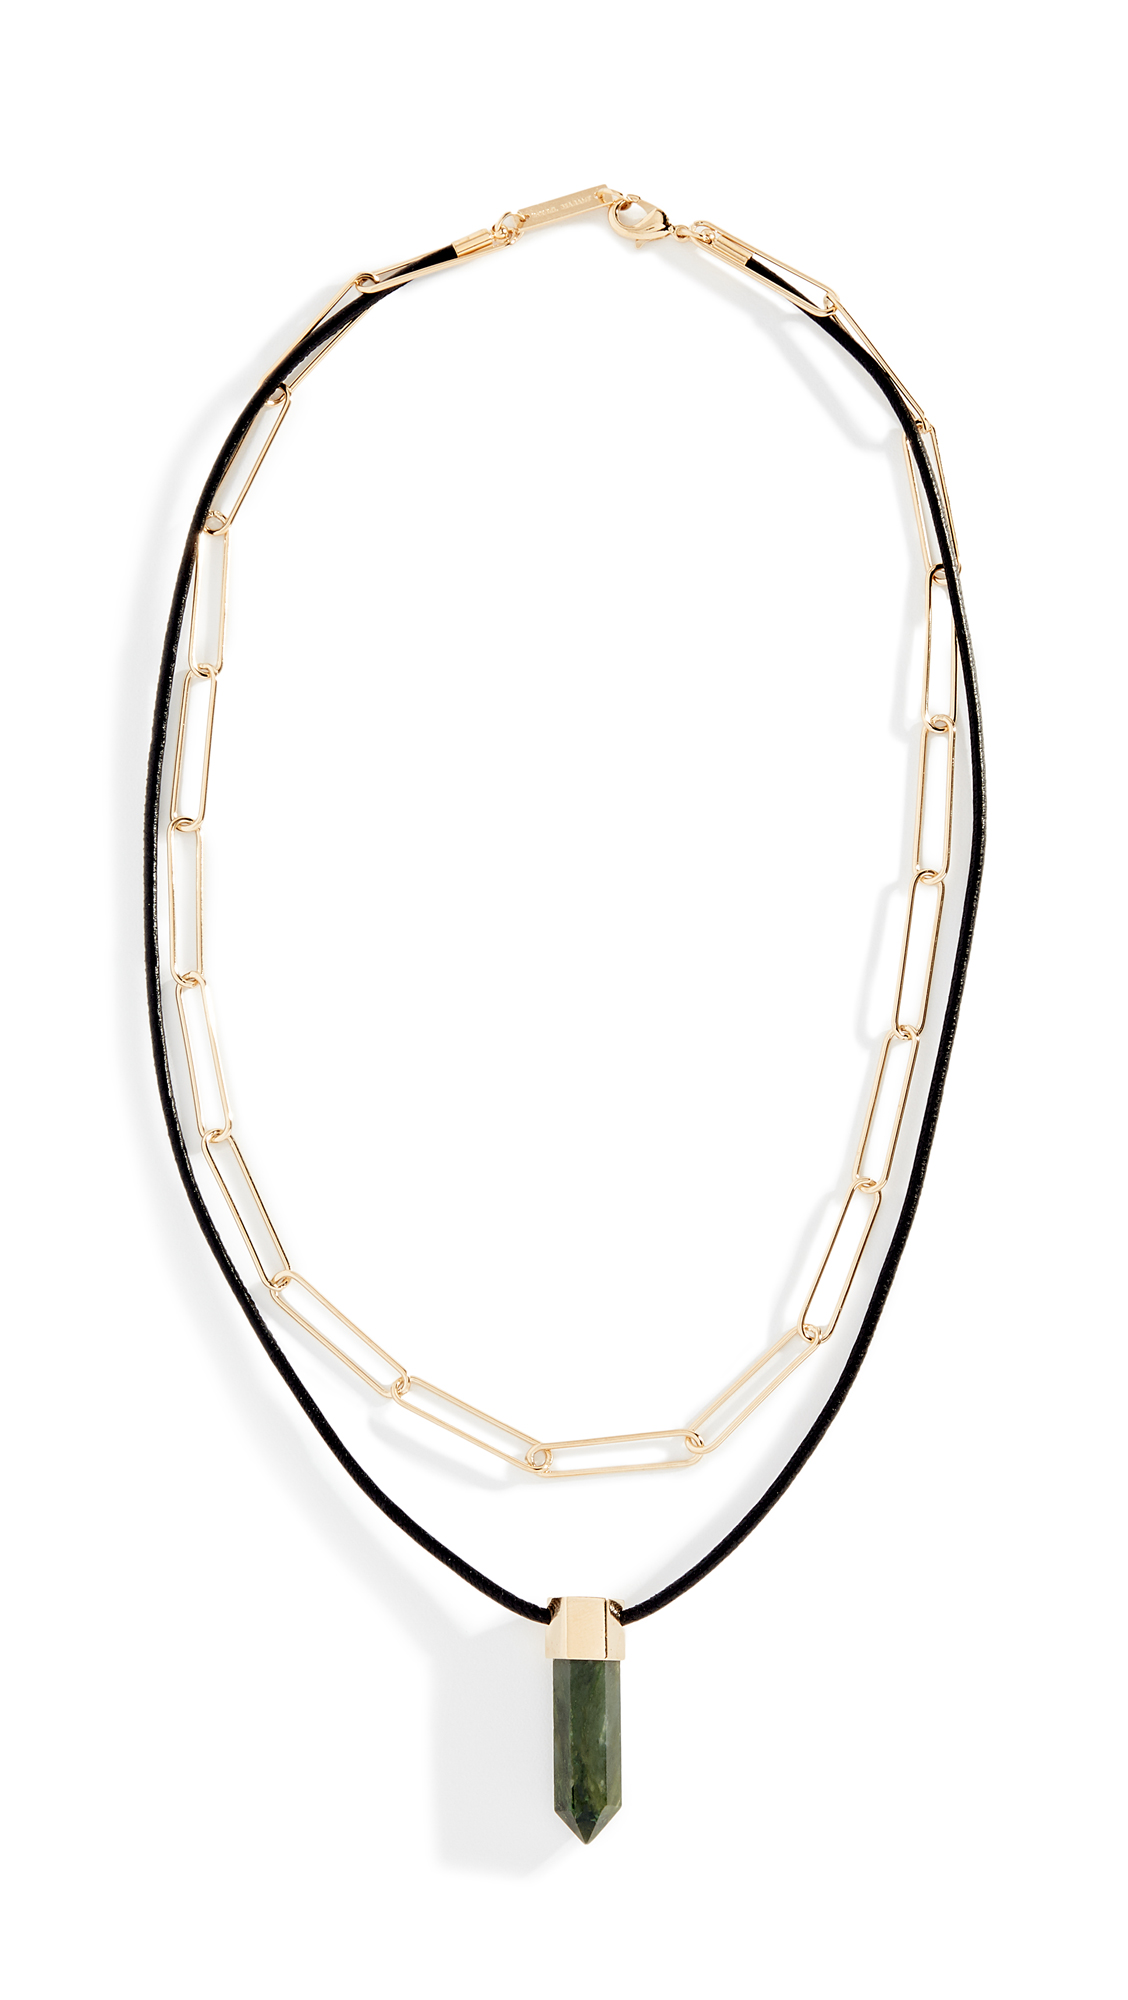 Isabel Marant Collier Crystal Necklace - Green